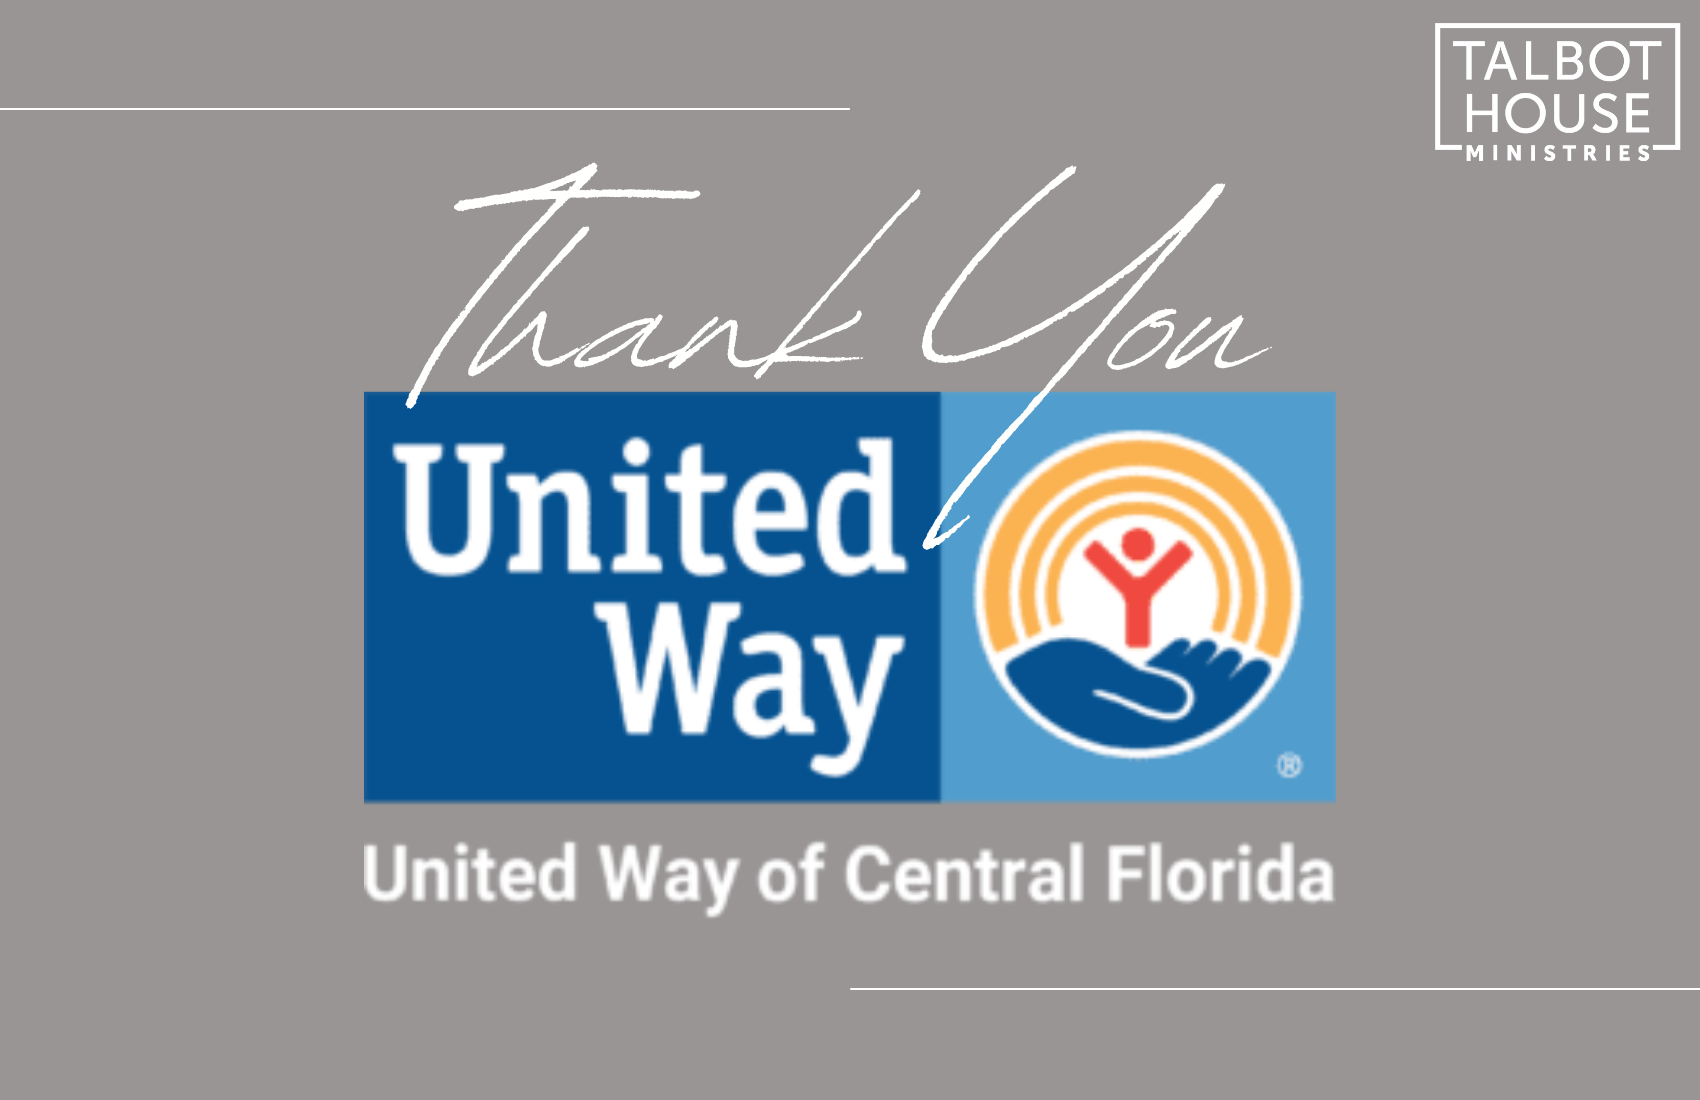 Thanking United Way of Central Florida